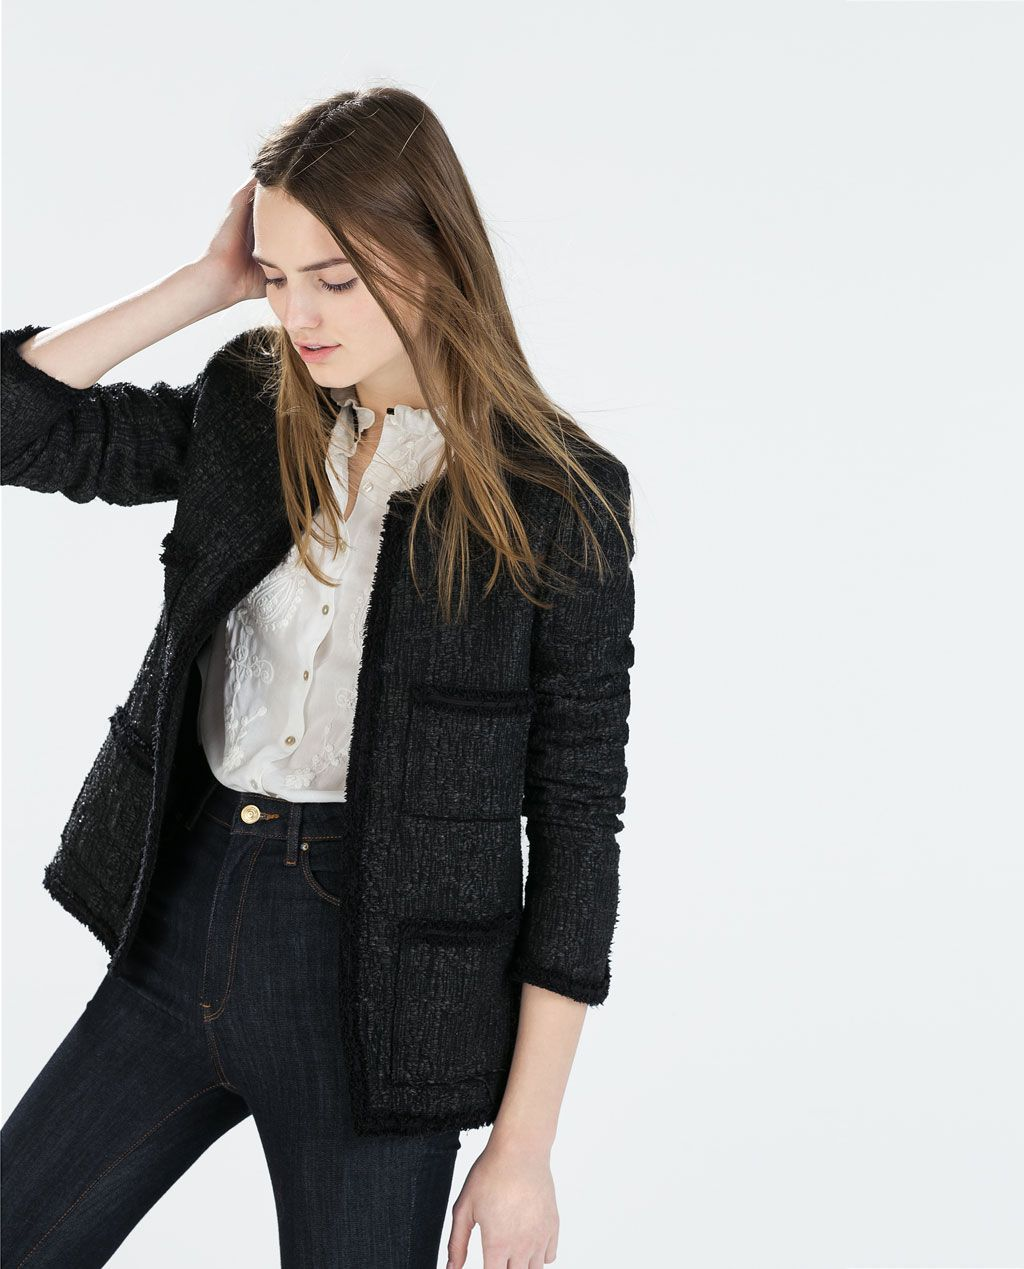 ZARA - WOMAN - STRUCTURED WOVEN JACKET WITH POCKETS